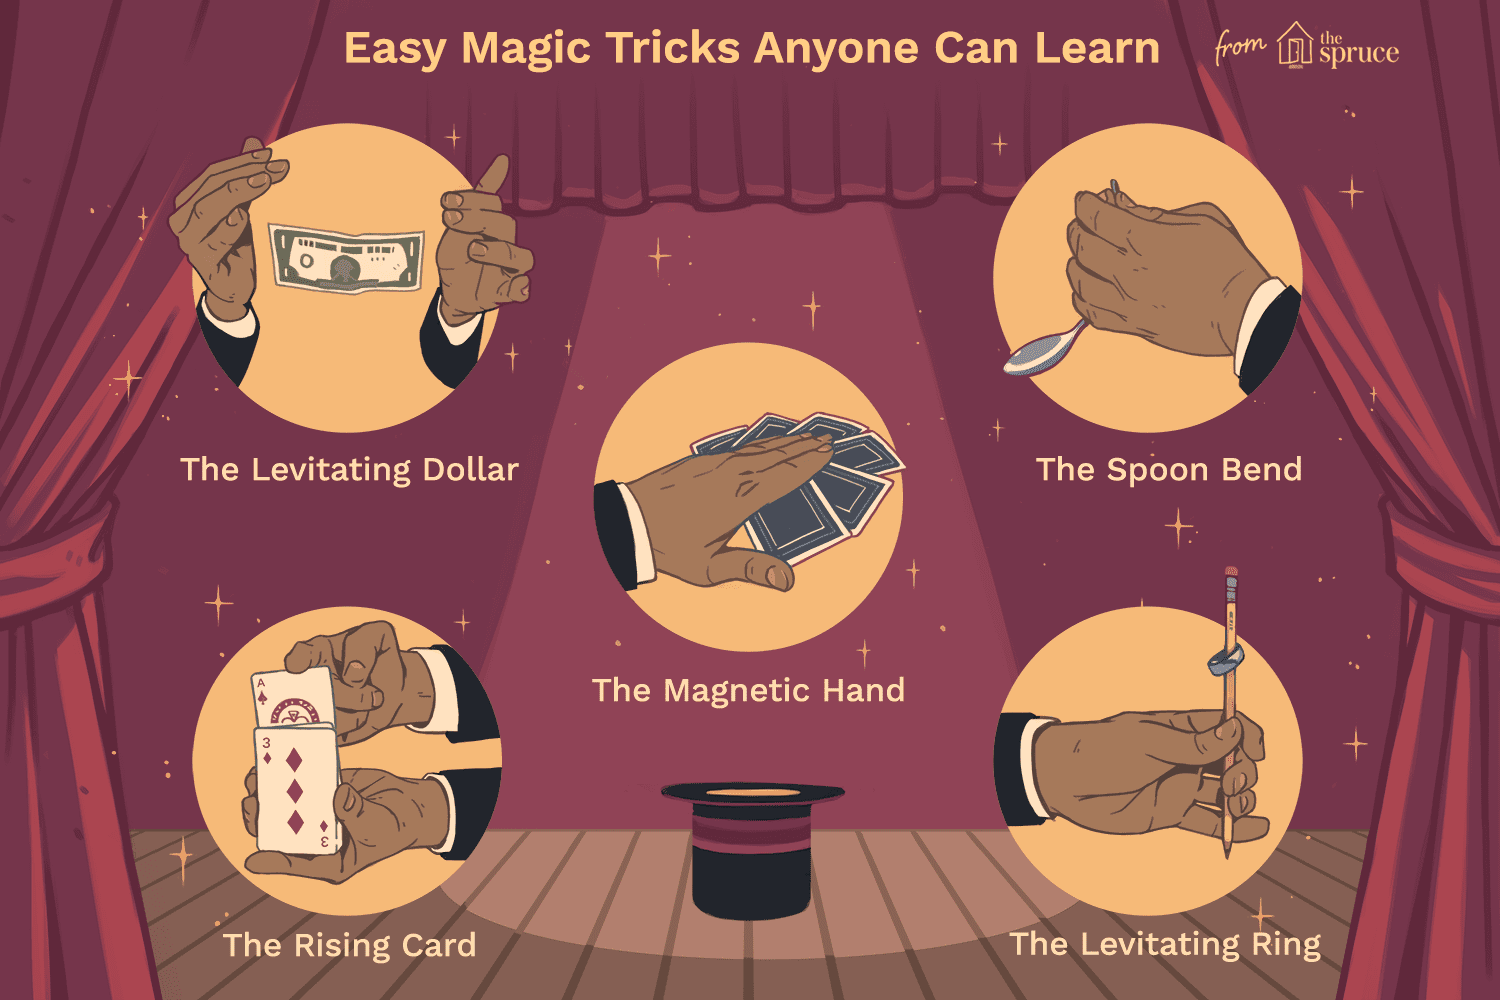 Learn Fun Magic Tricks to Try on Your Friends